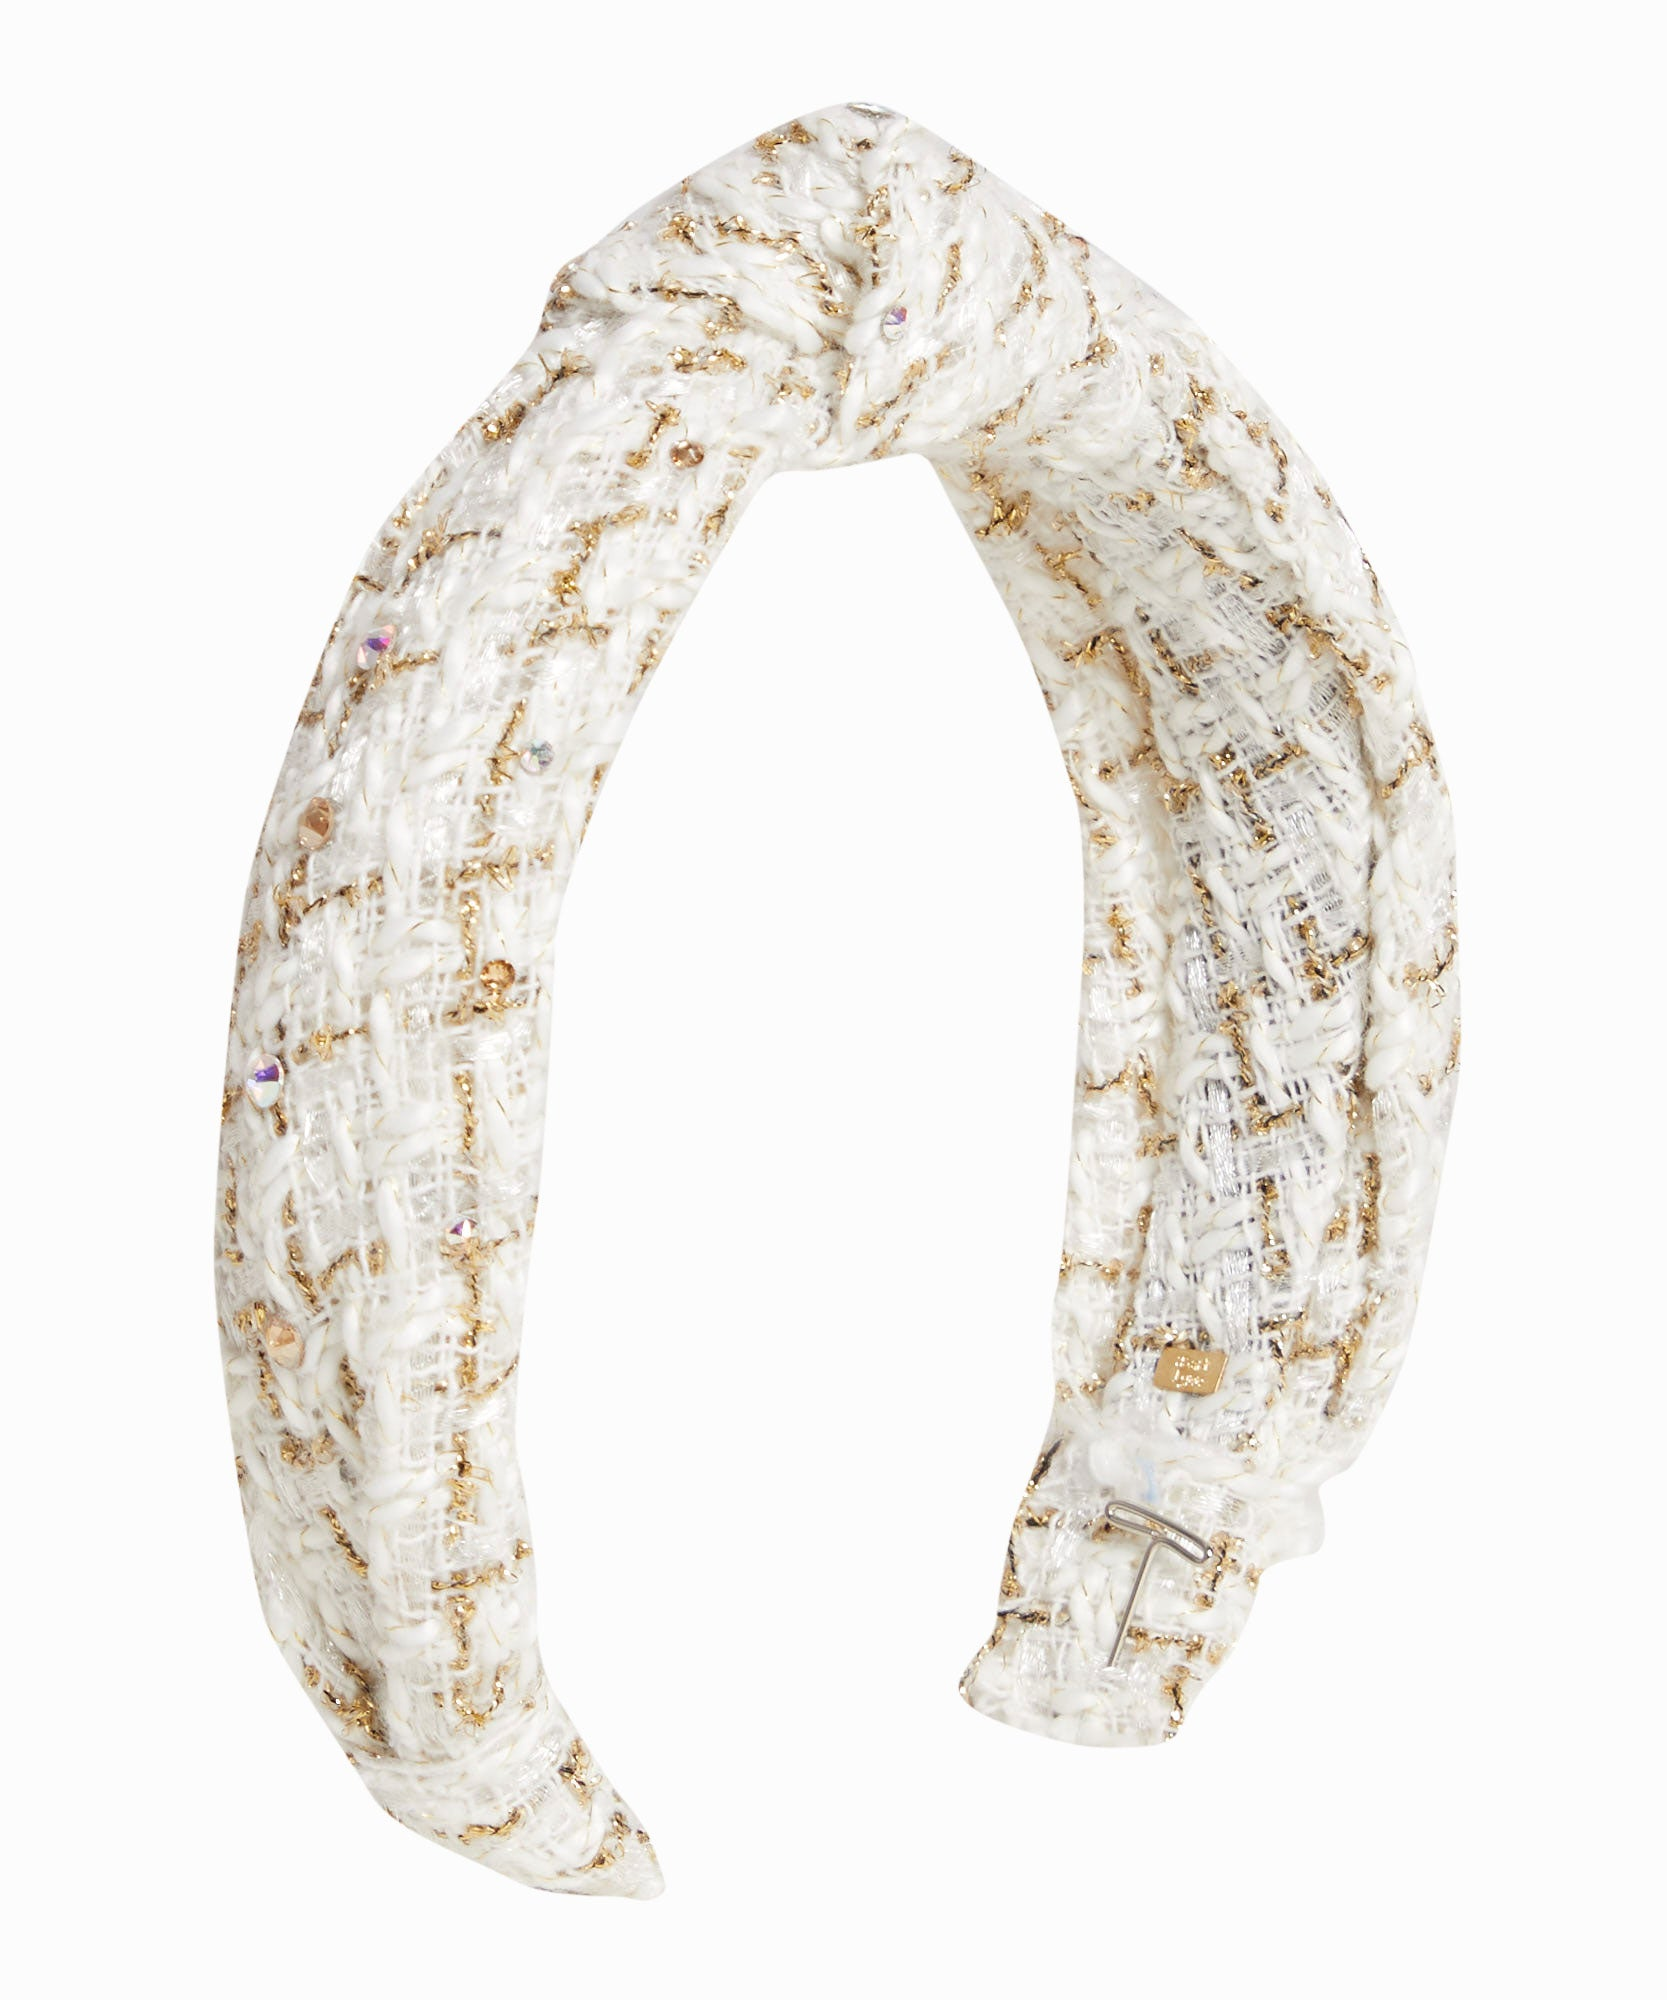 Ivory Tweed Knot Headband